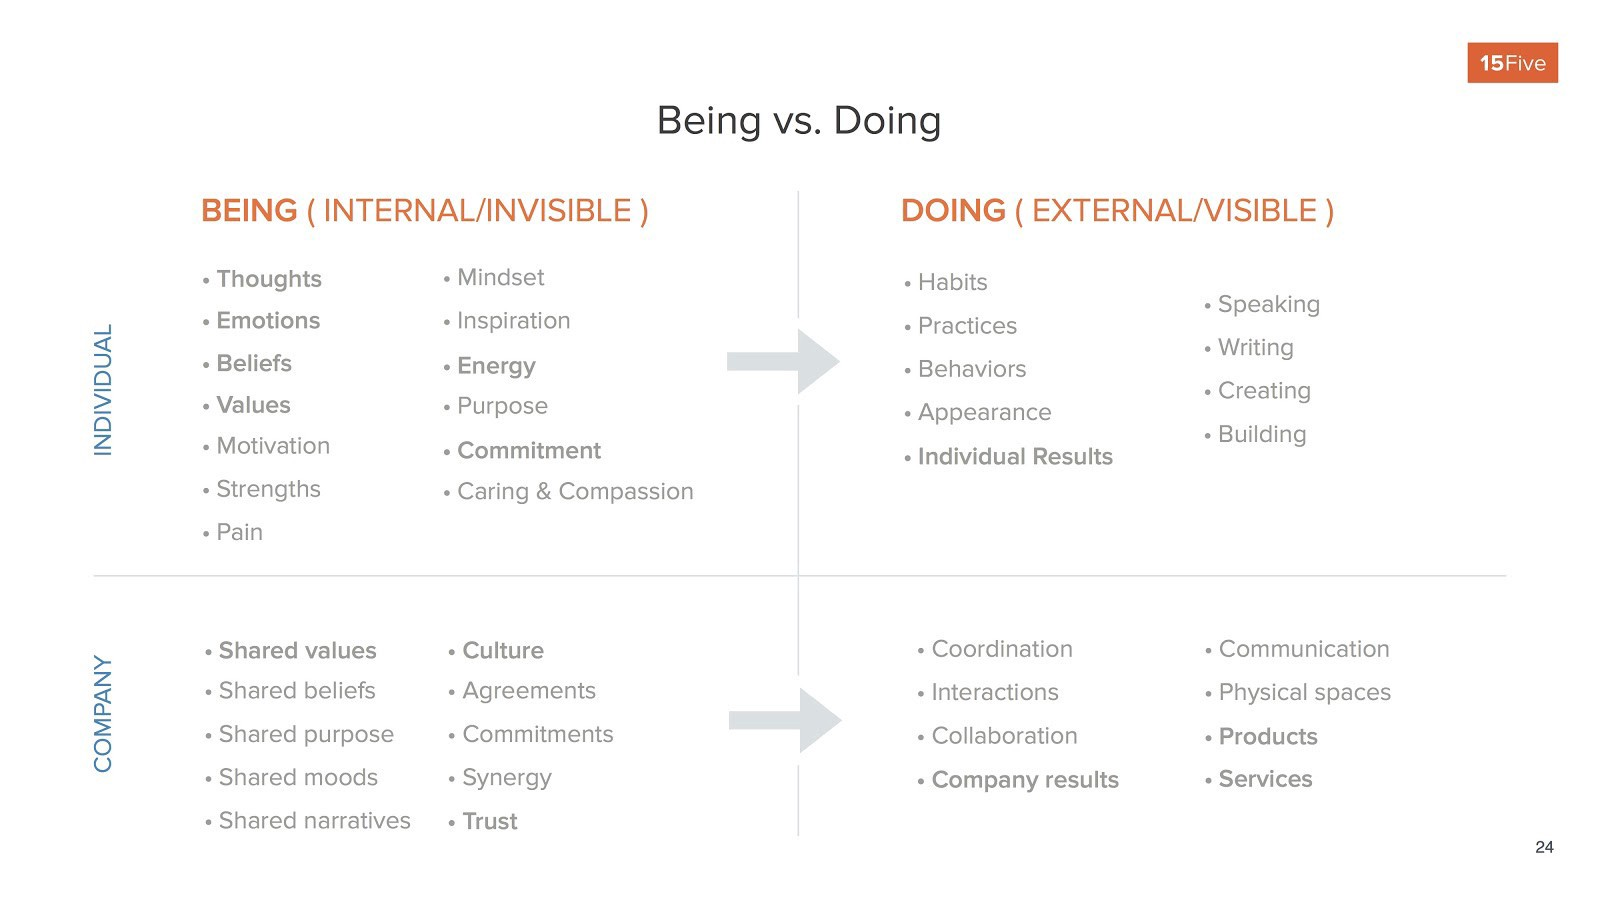 Examples of being vs doing in the workplace